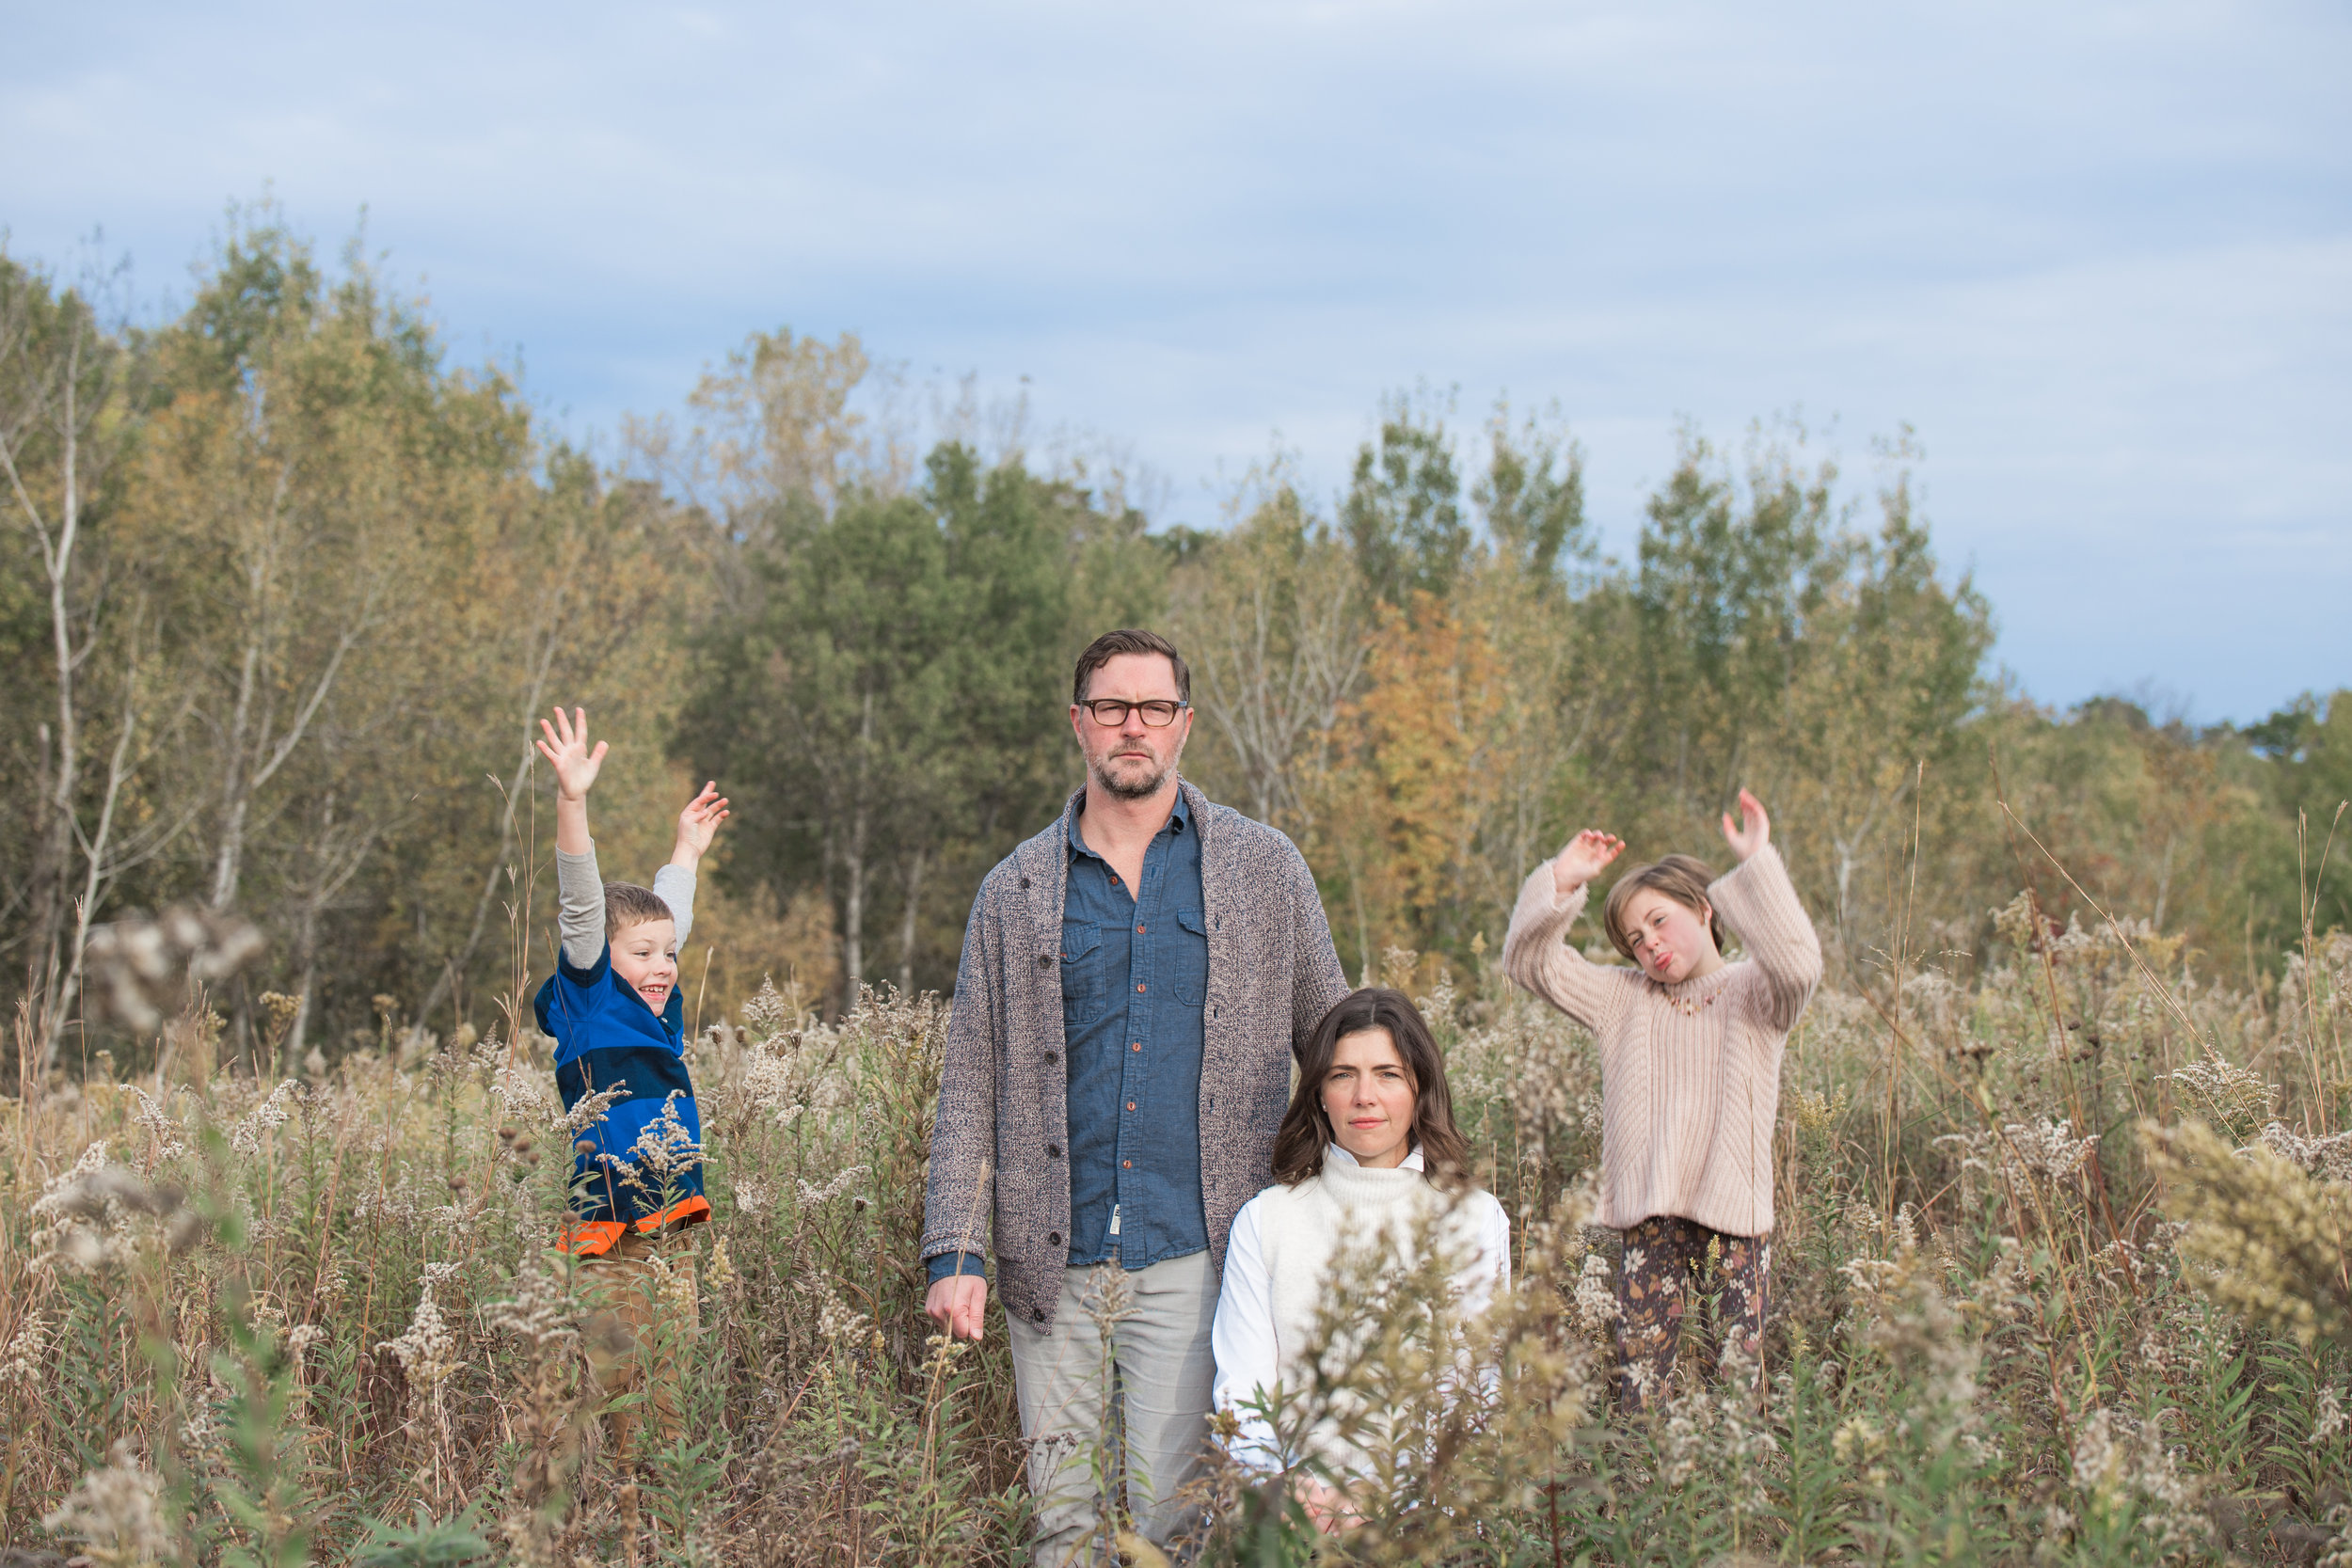 (we did normal family portraits too but this is more fun to share>)